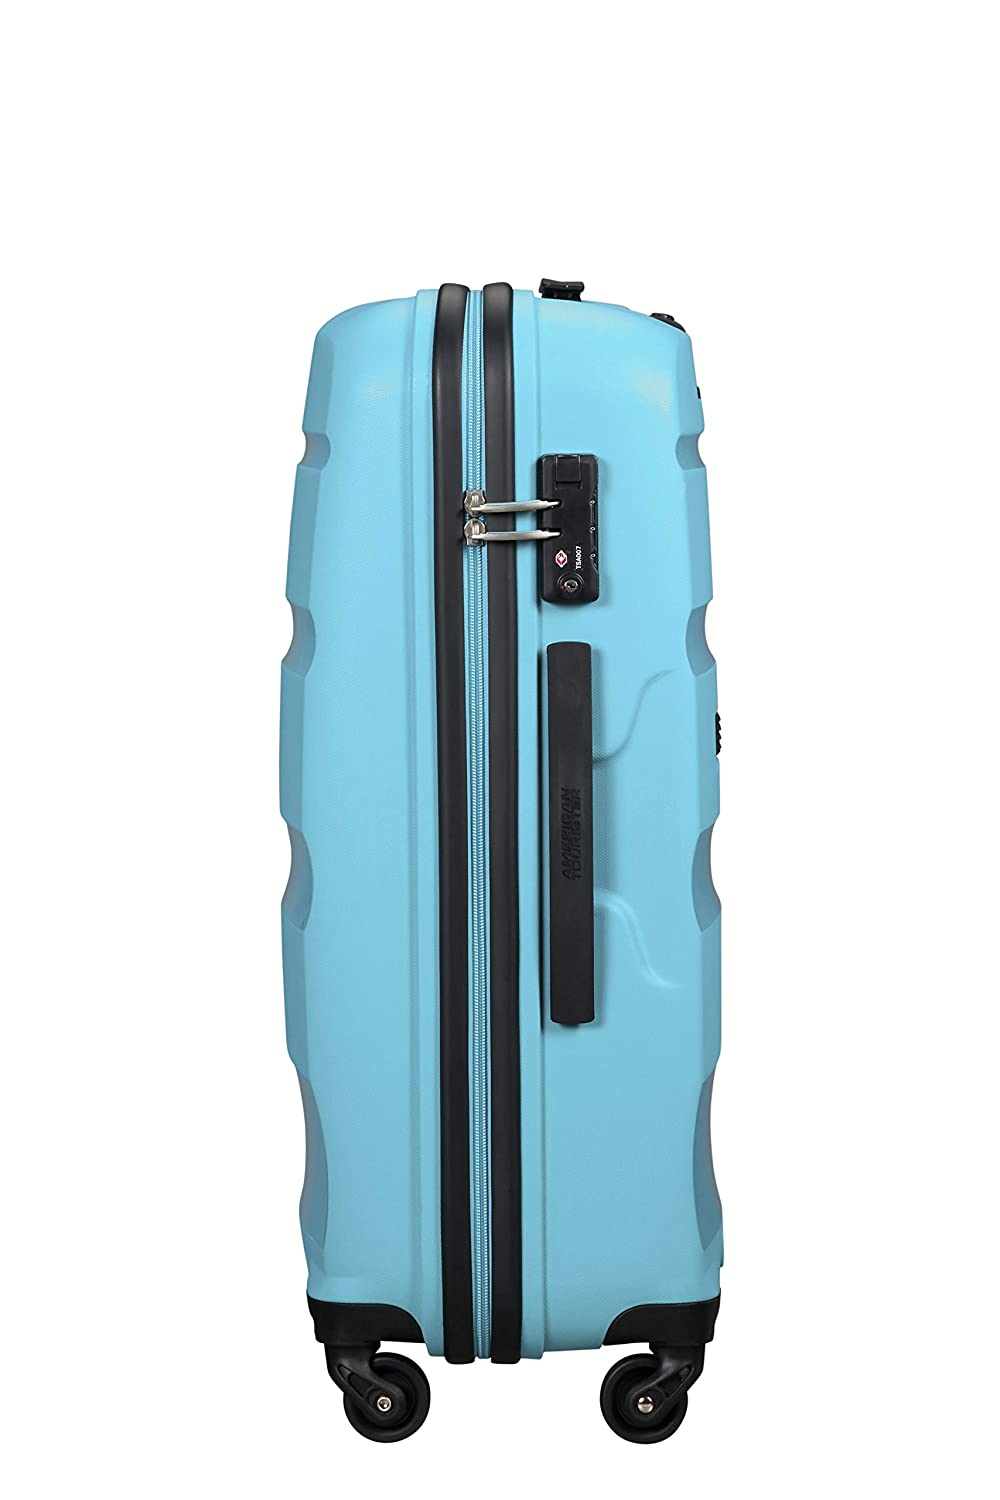 Amazon.com: American Tourister Bon Air - Maleta con ruedas ...